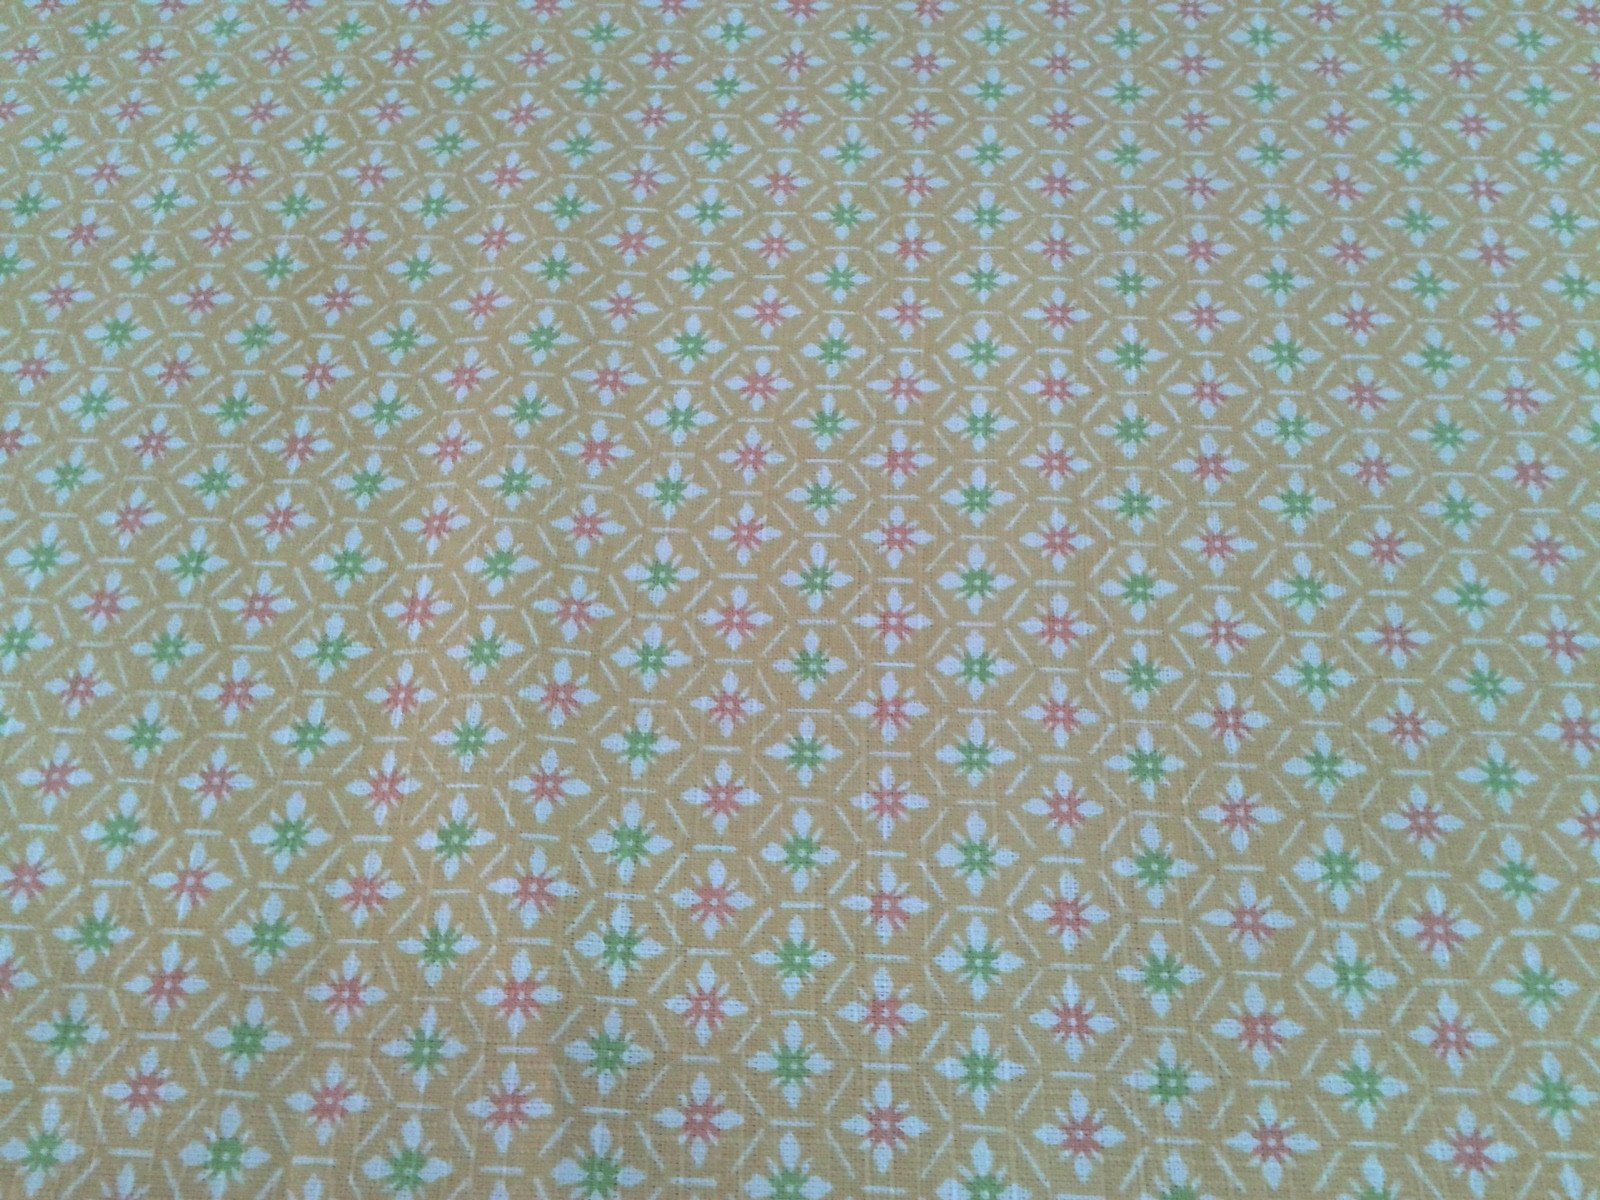 Cotton Prints 140cm - BulgarianTextile.com